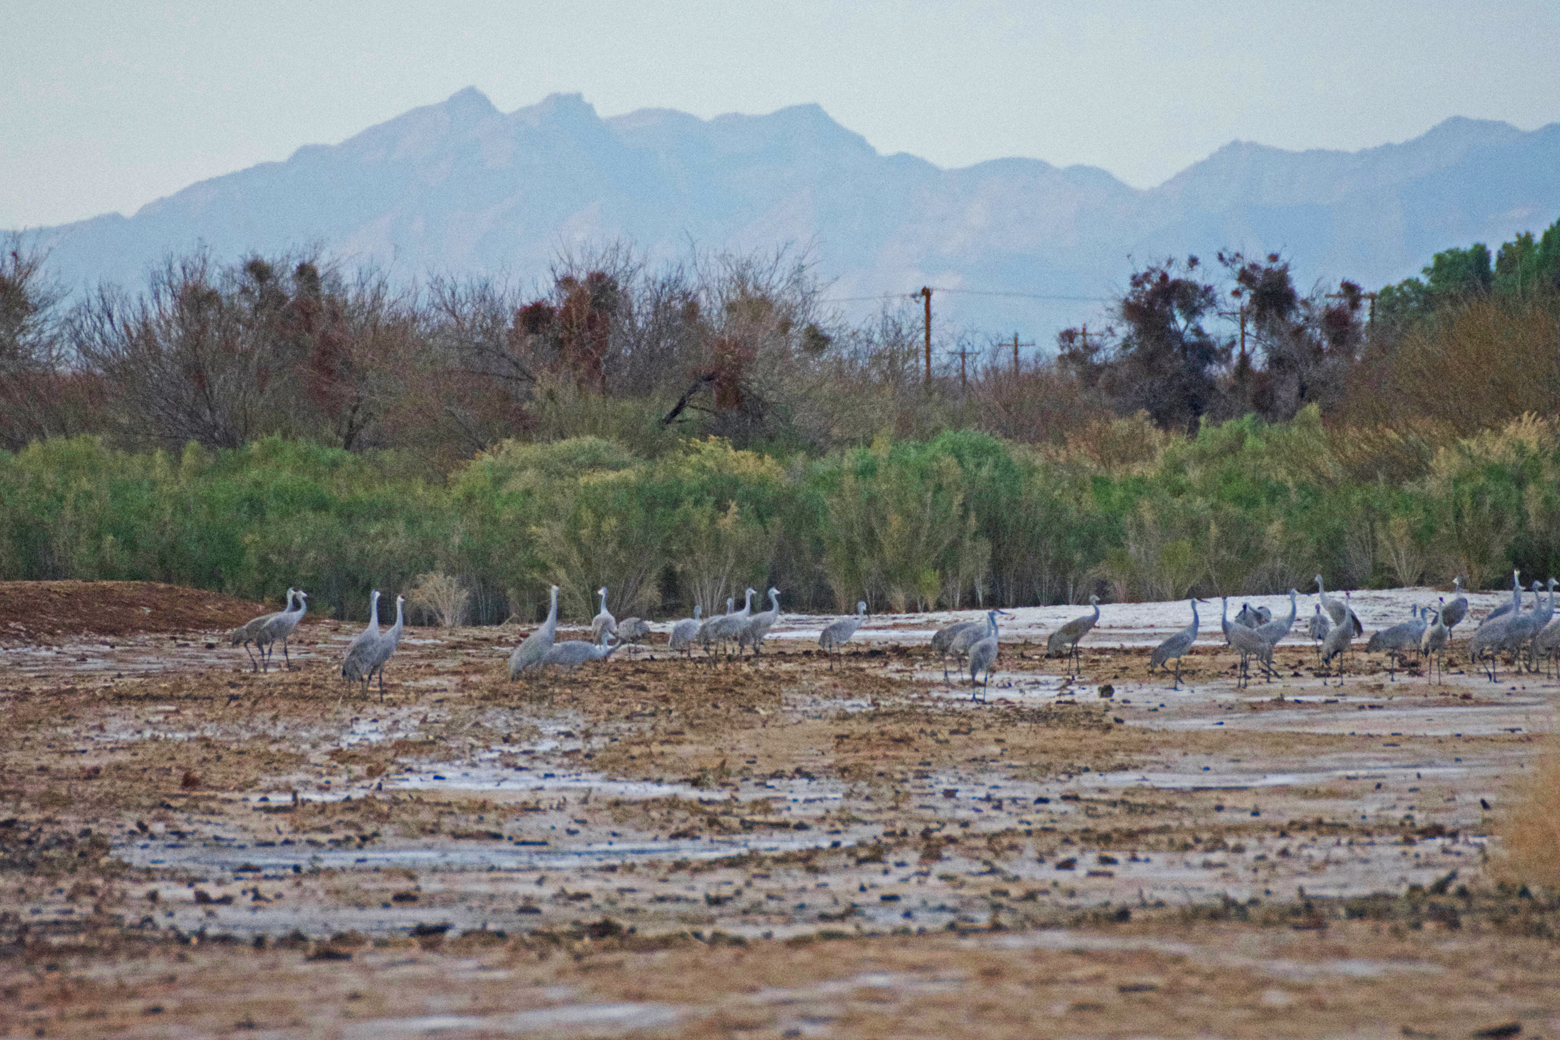 Sandhill cranes standing on a mudflat near the pond at Cibola